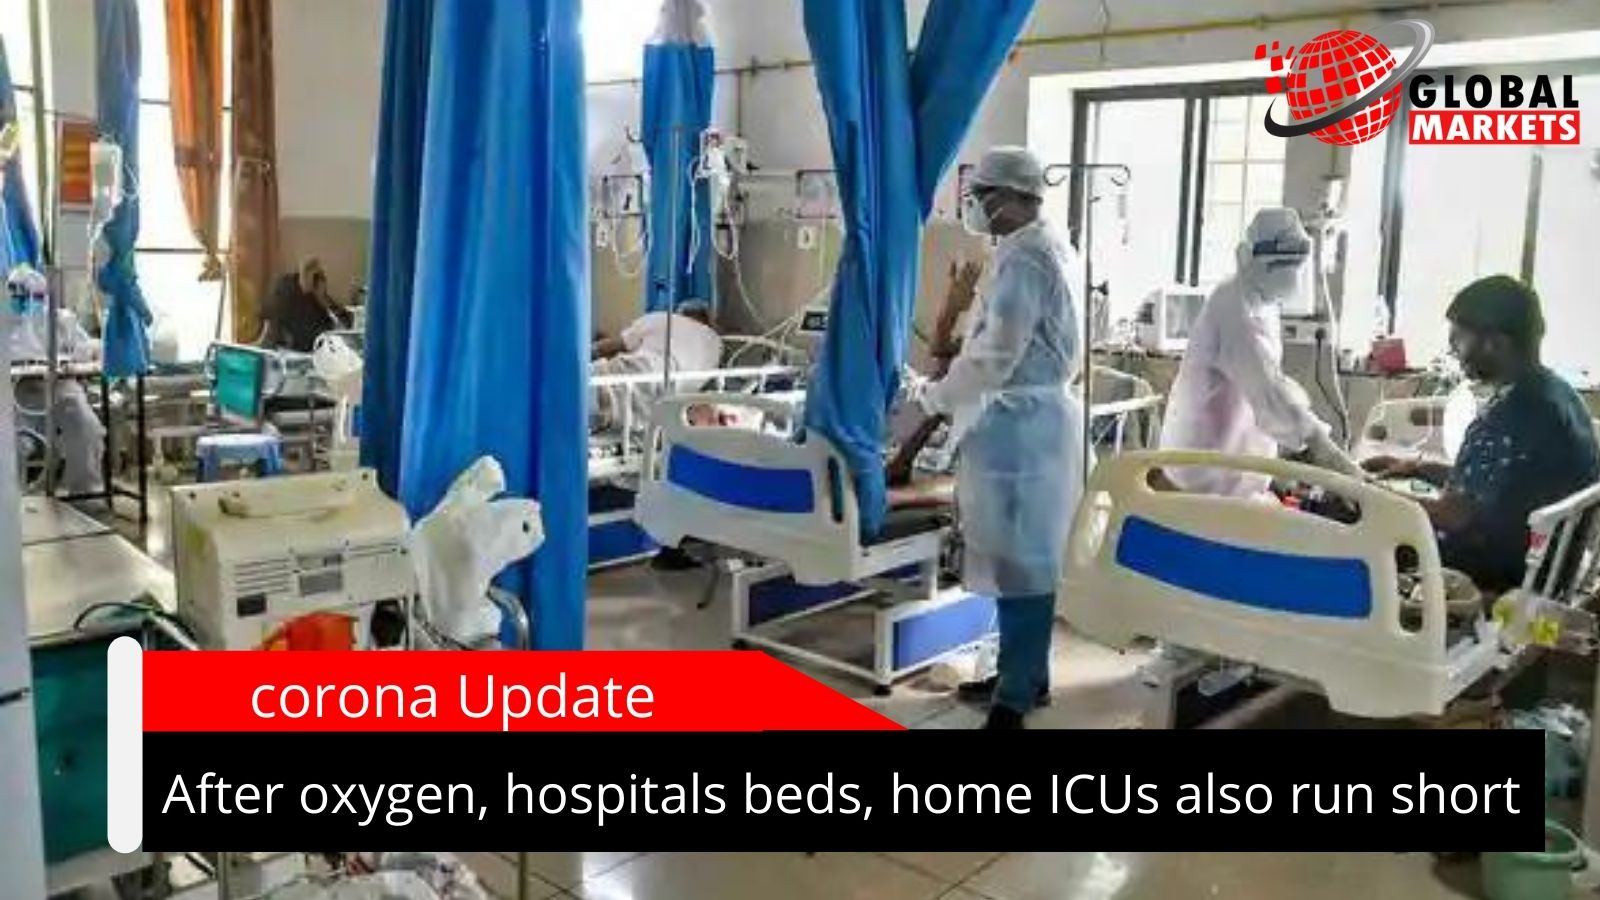 After oxygen, hospitals beds, home ICUs also run short